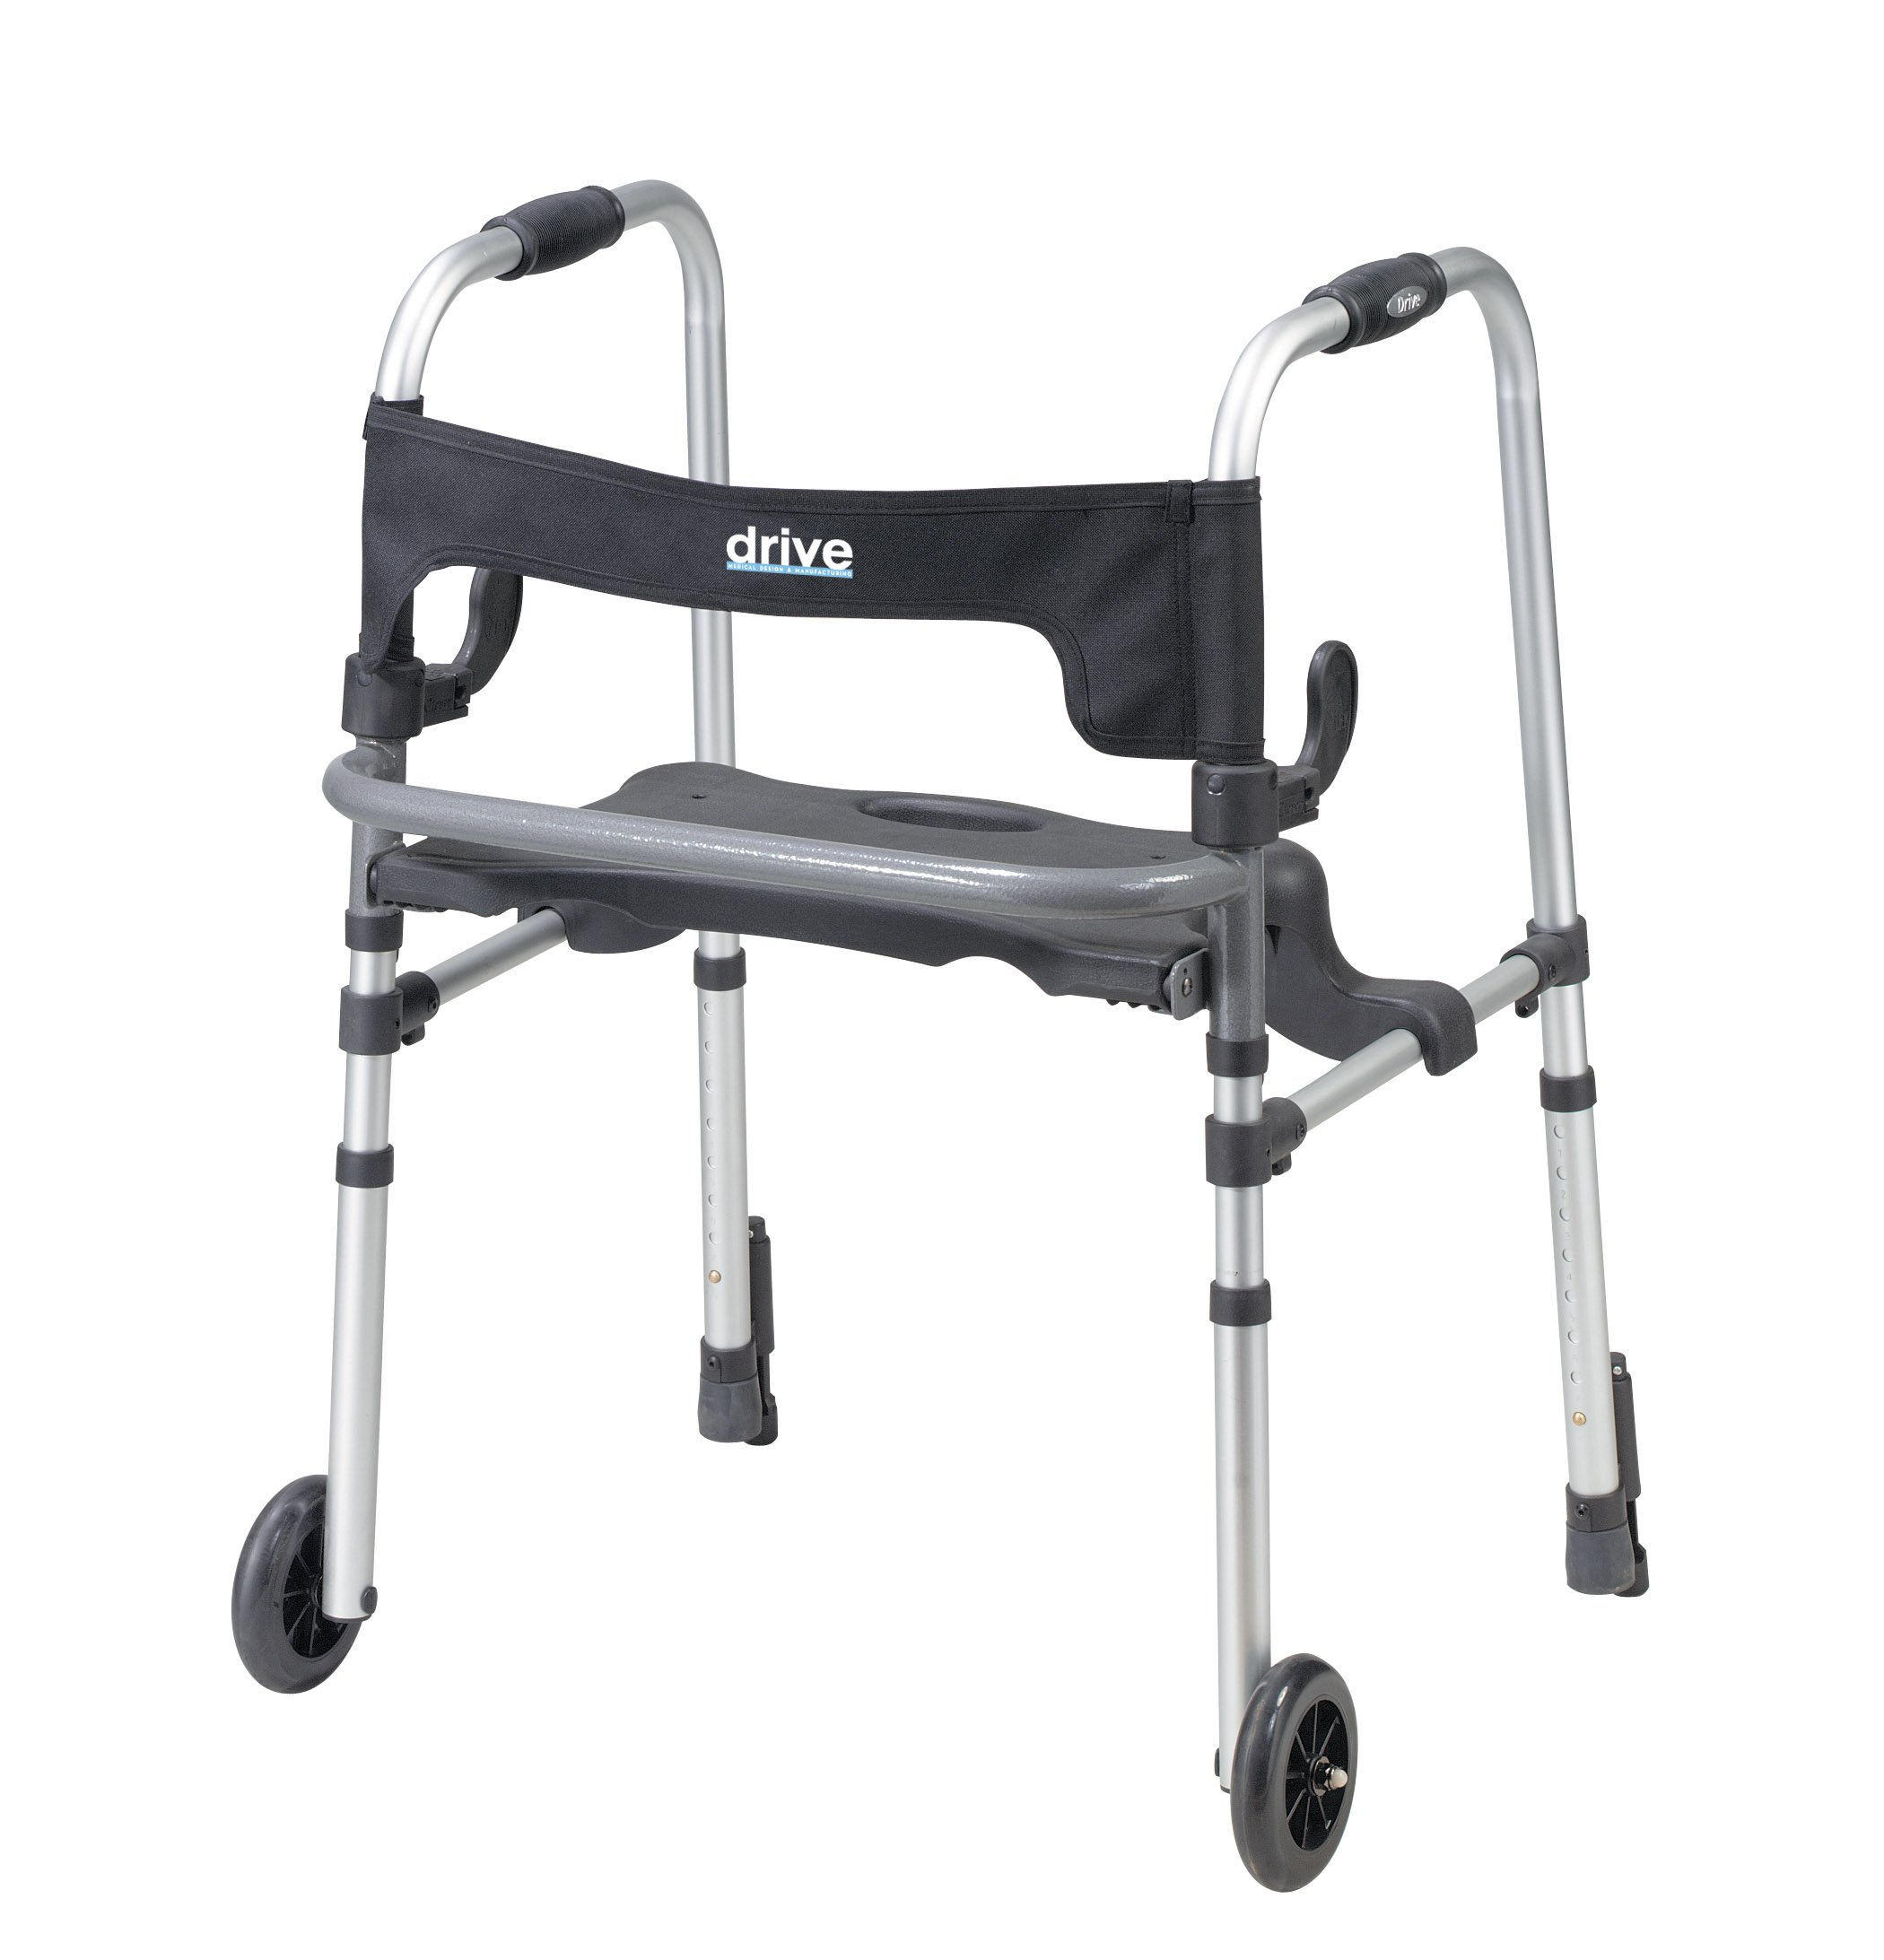 Drive Medical Clever-Lite LS Rollator Walker with Seat and Push Down Brakes, Gray by Drive Medical